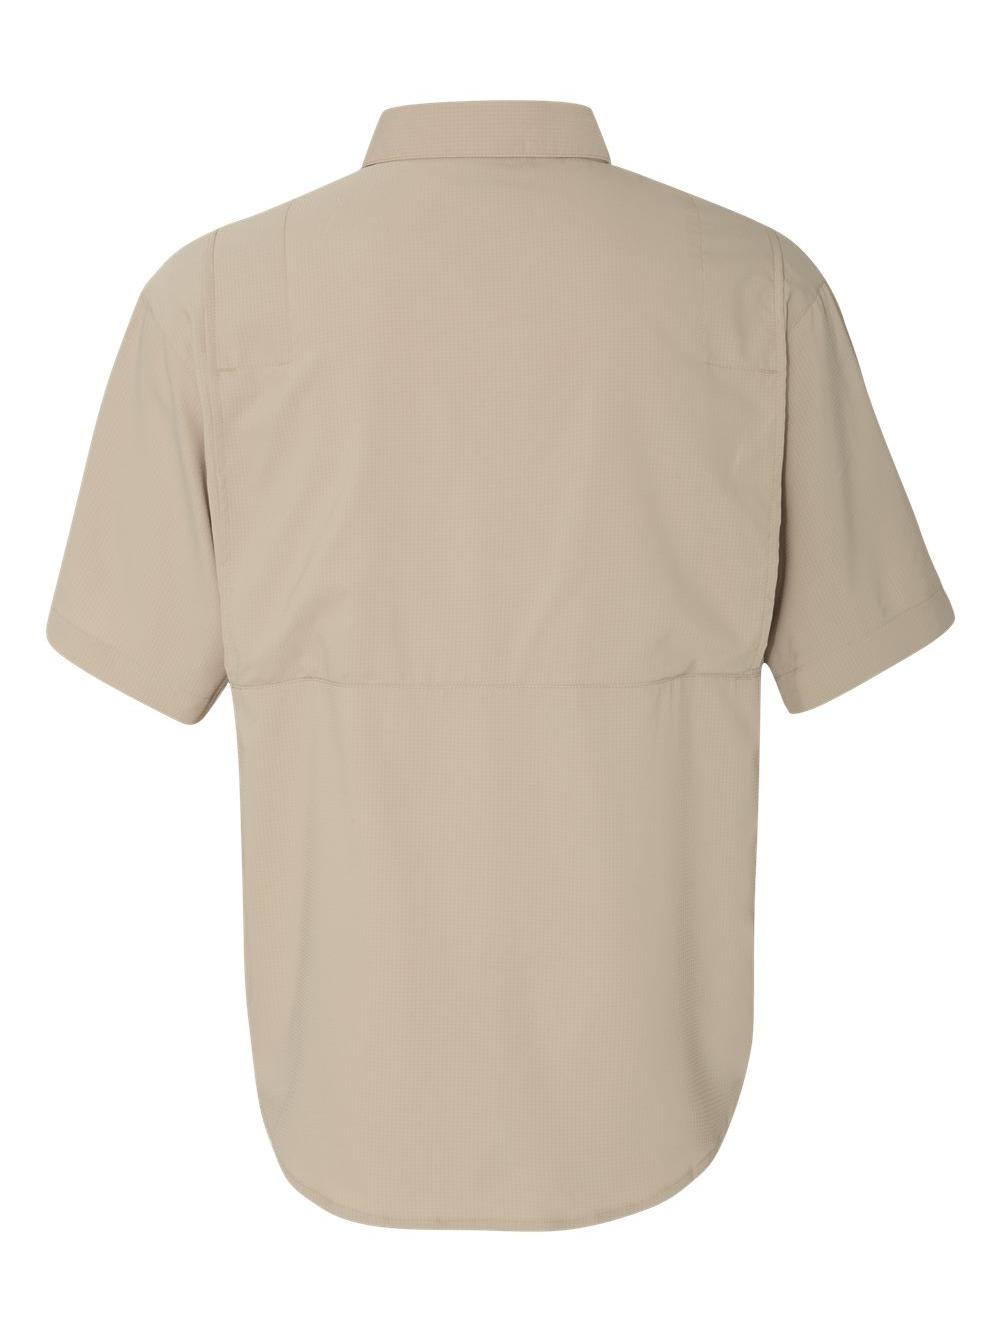 Hilton-Baja-Short-Sleeve-Fishing-Shirt-ZP2297 thumbnail 7